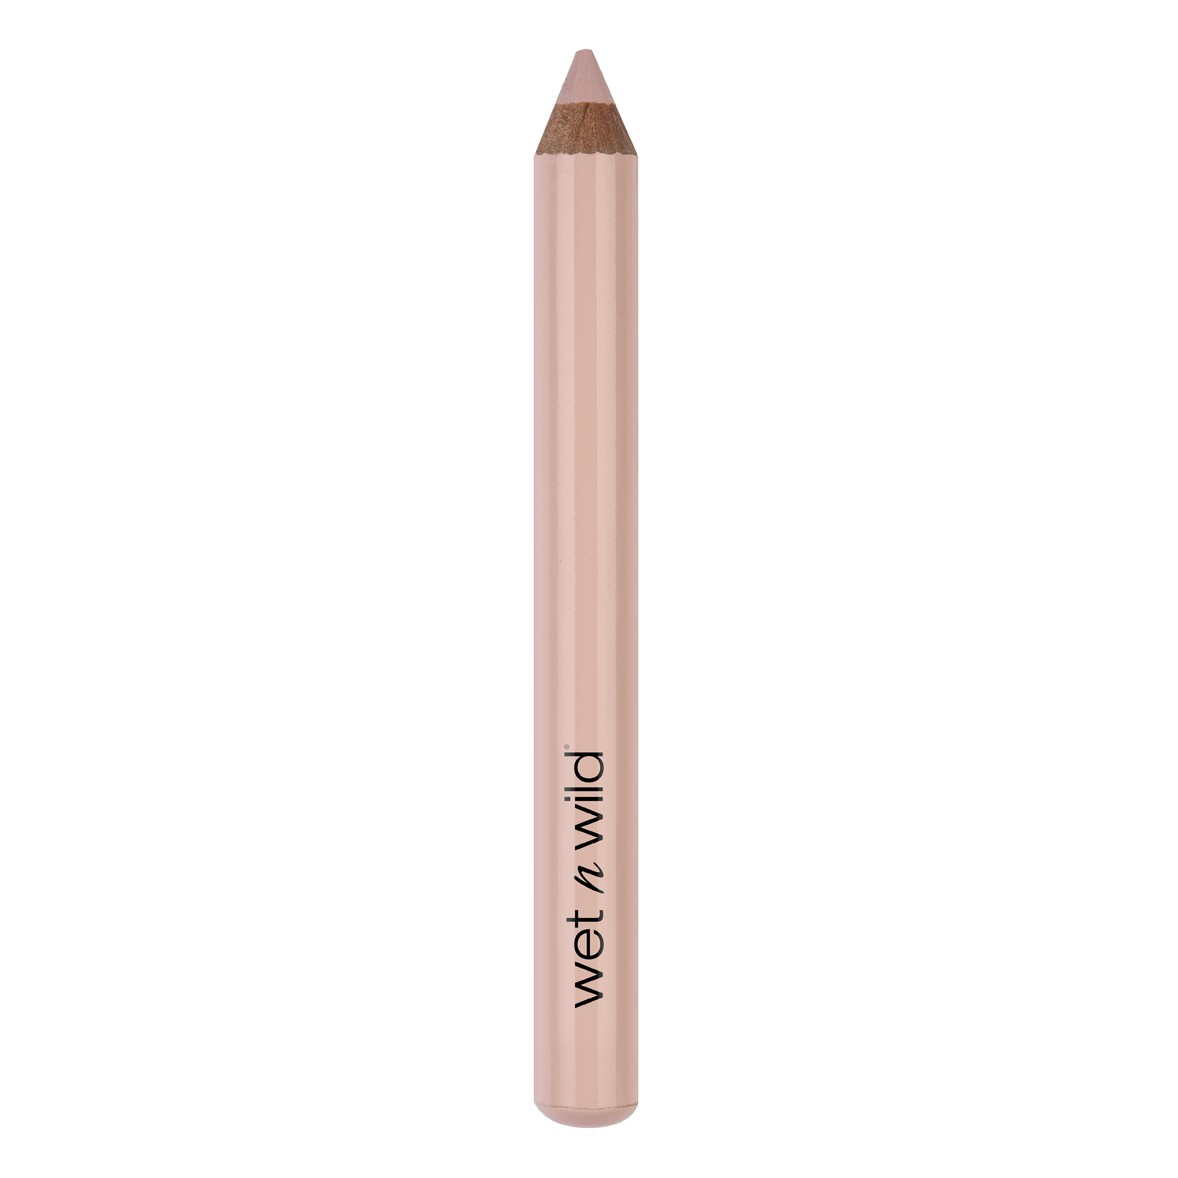 Augenbrauen-Highlighter - Ultimate Brow Highlighter